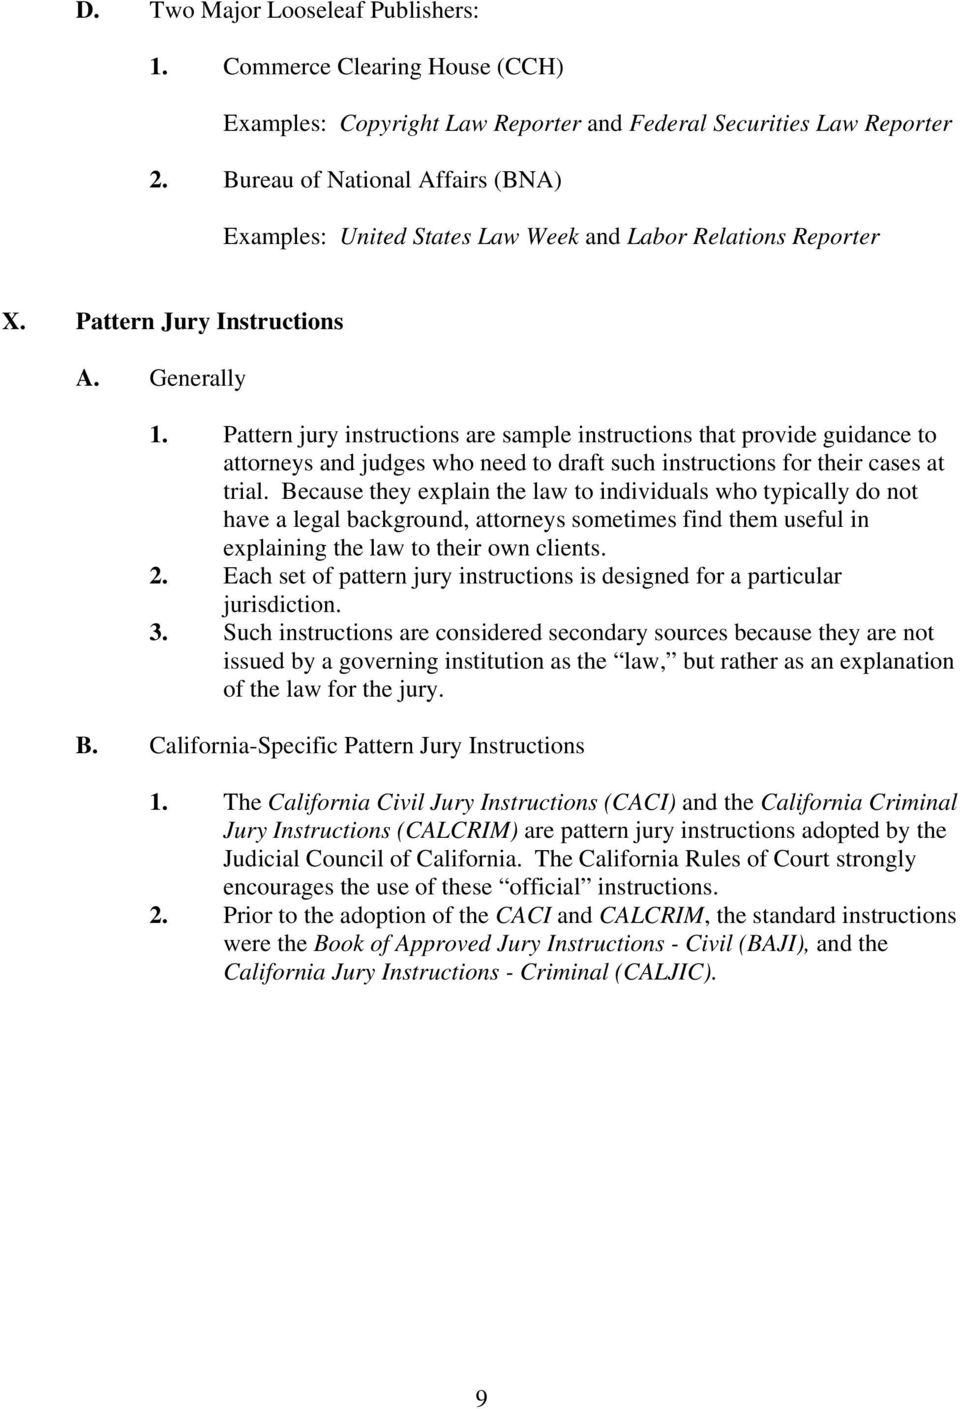 Pattern jury instructions are sample instructions that provide guidance to attorneys and judges who need to draft such instructions for their cases at trial.